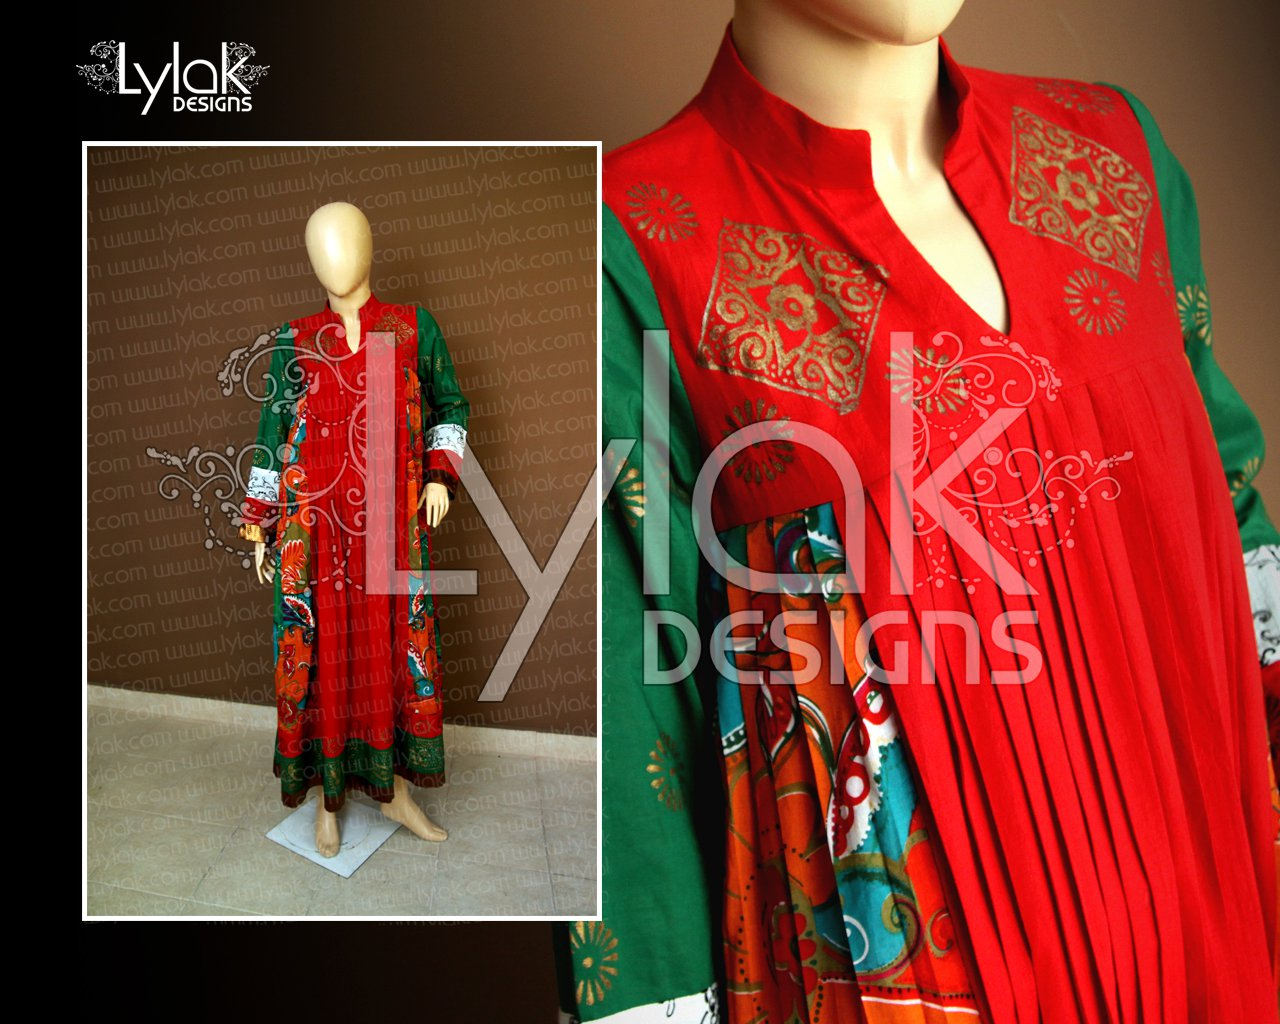 Red Frock by Lylak Designs 006